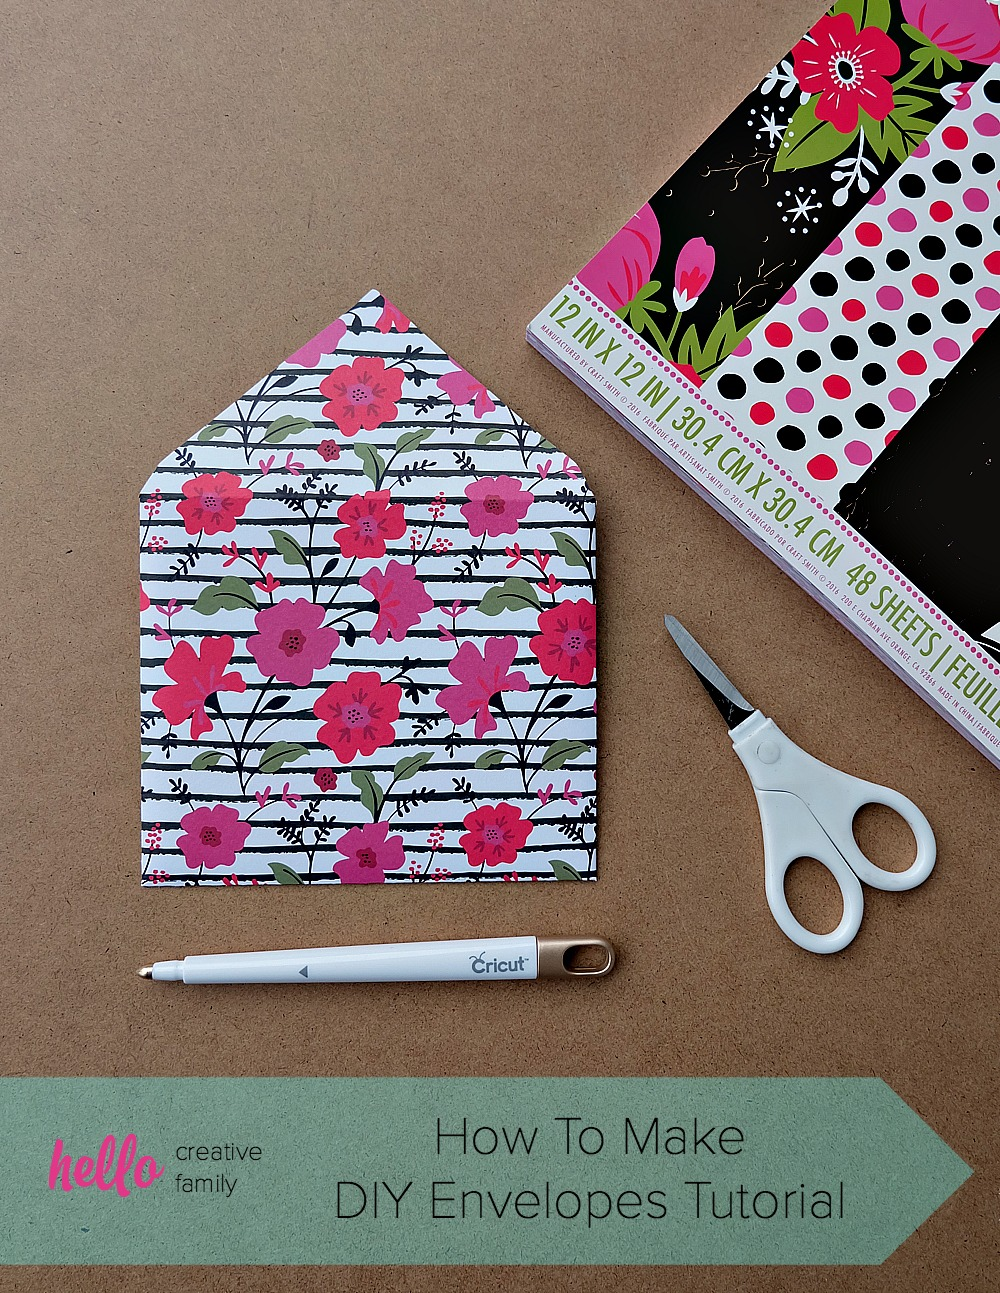 scrapbooking craft ideas how to make diy envelopes tutorial hello creative family 2887